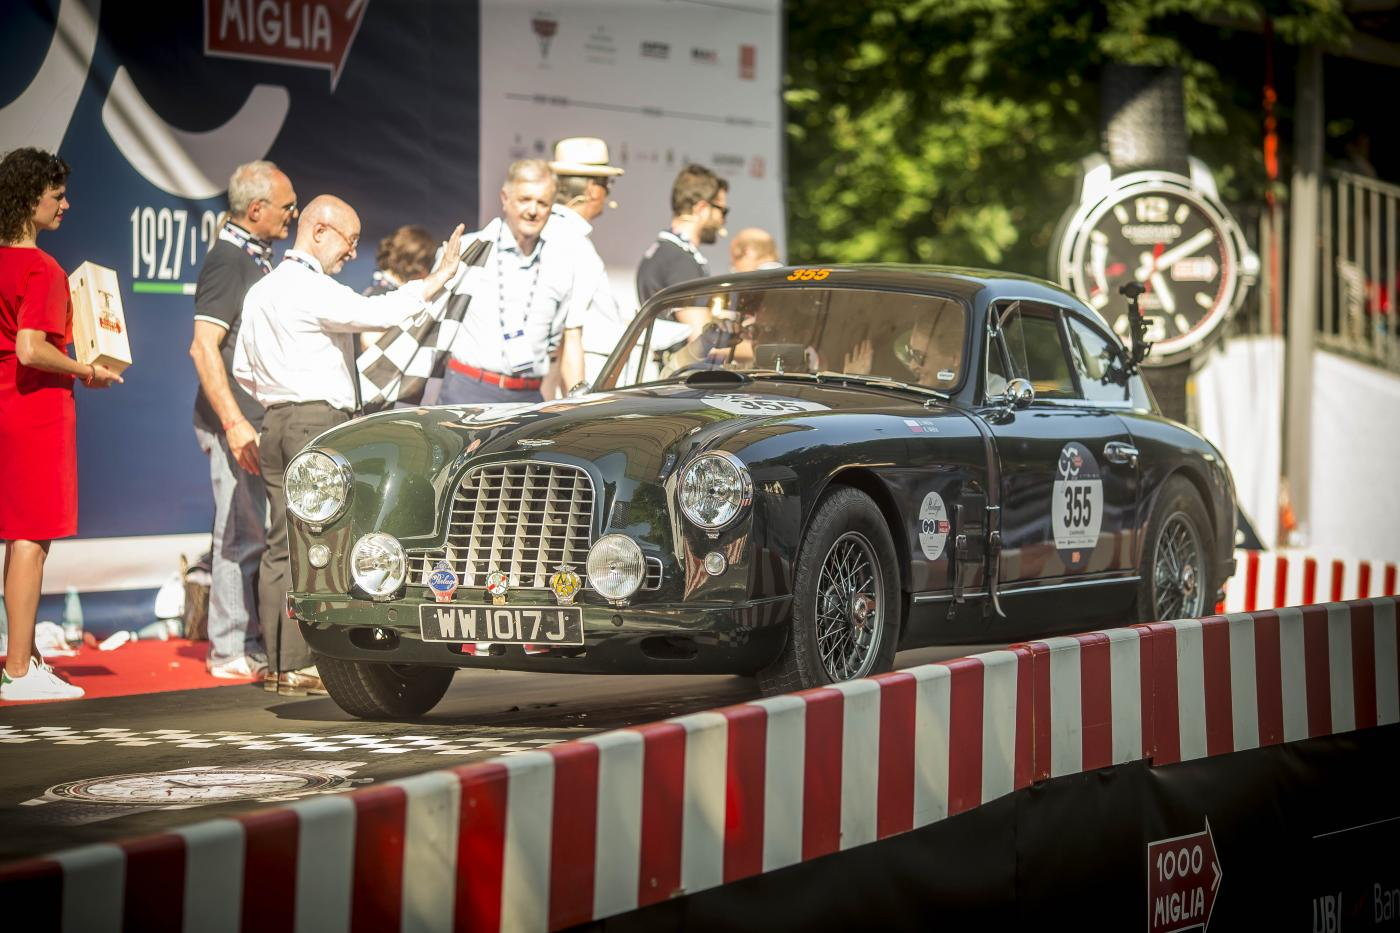 1000 Miglia - regularity race 5